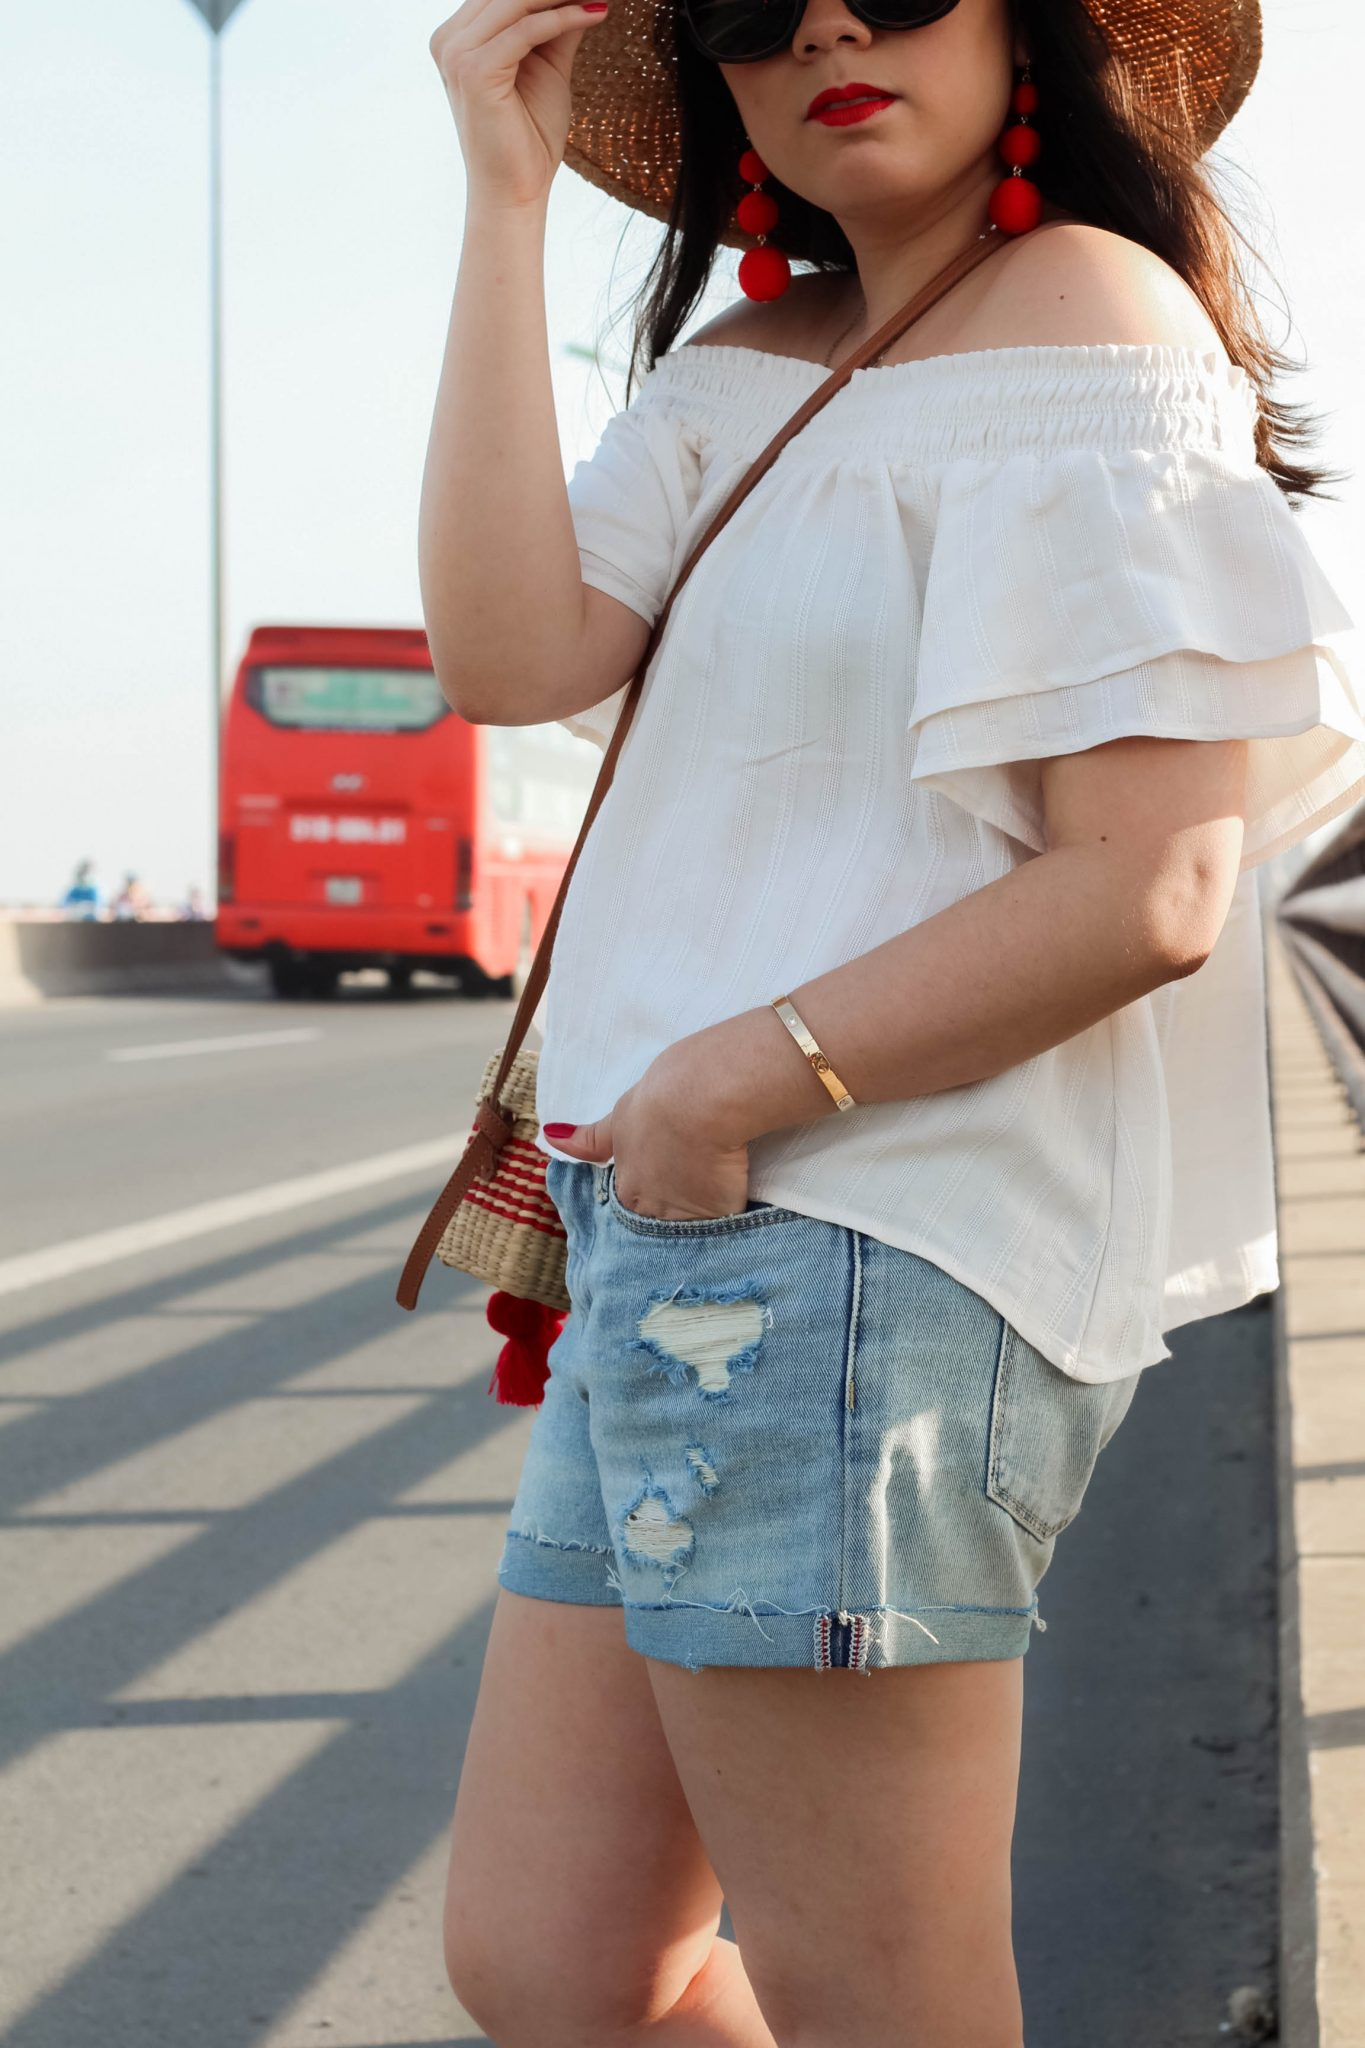 The Classic Quintessential Summer Look on the Cần Thơ Bridge by popular New York fashion and travel blogger Live Laugh Linda